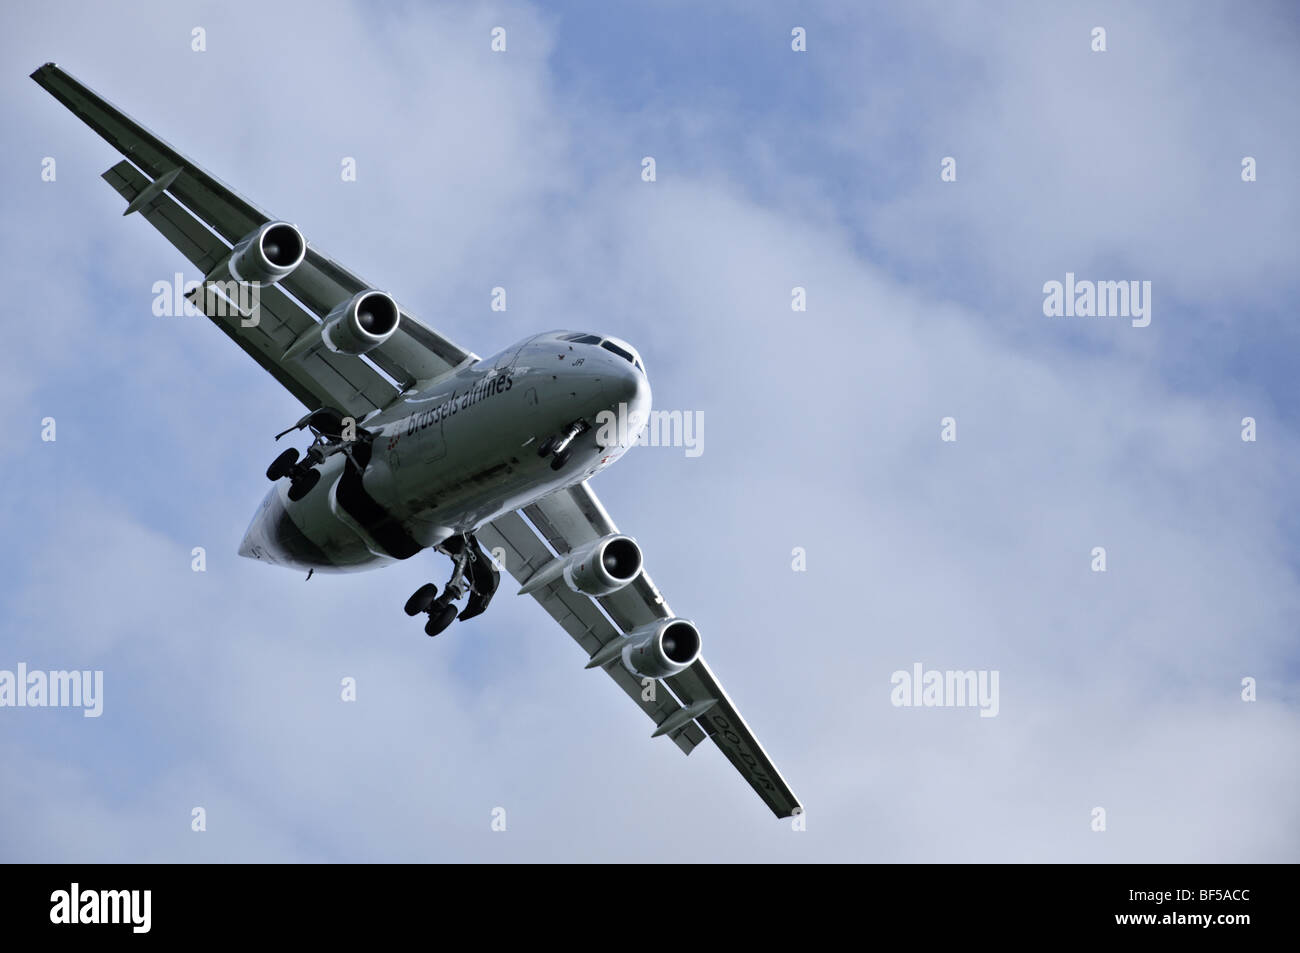 Brussels Airlines' BAe 146 coming in to land at Manchester Airport Stock Photo